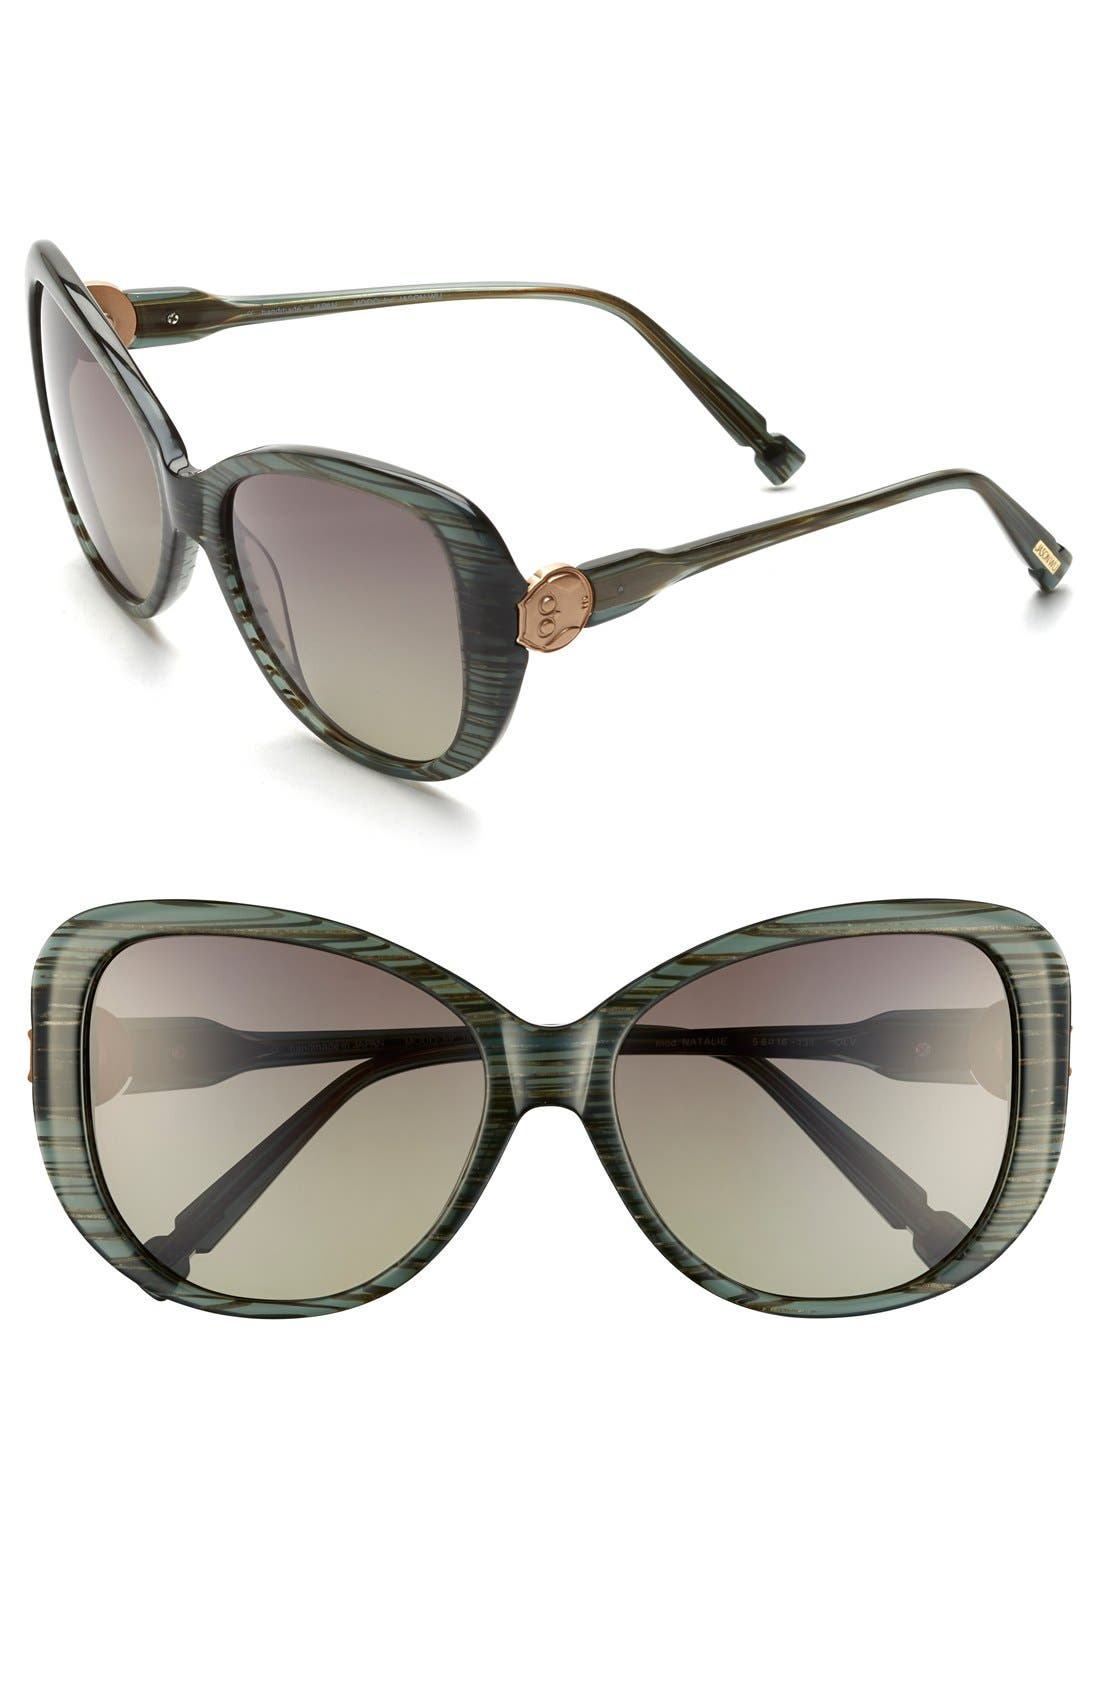 Alternate Image 1 Selected - Jason Wu 'Natalie' 56mm Sunglasses